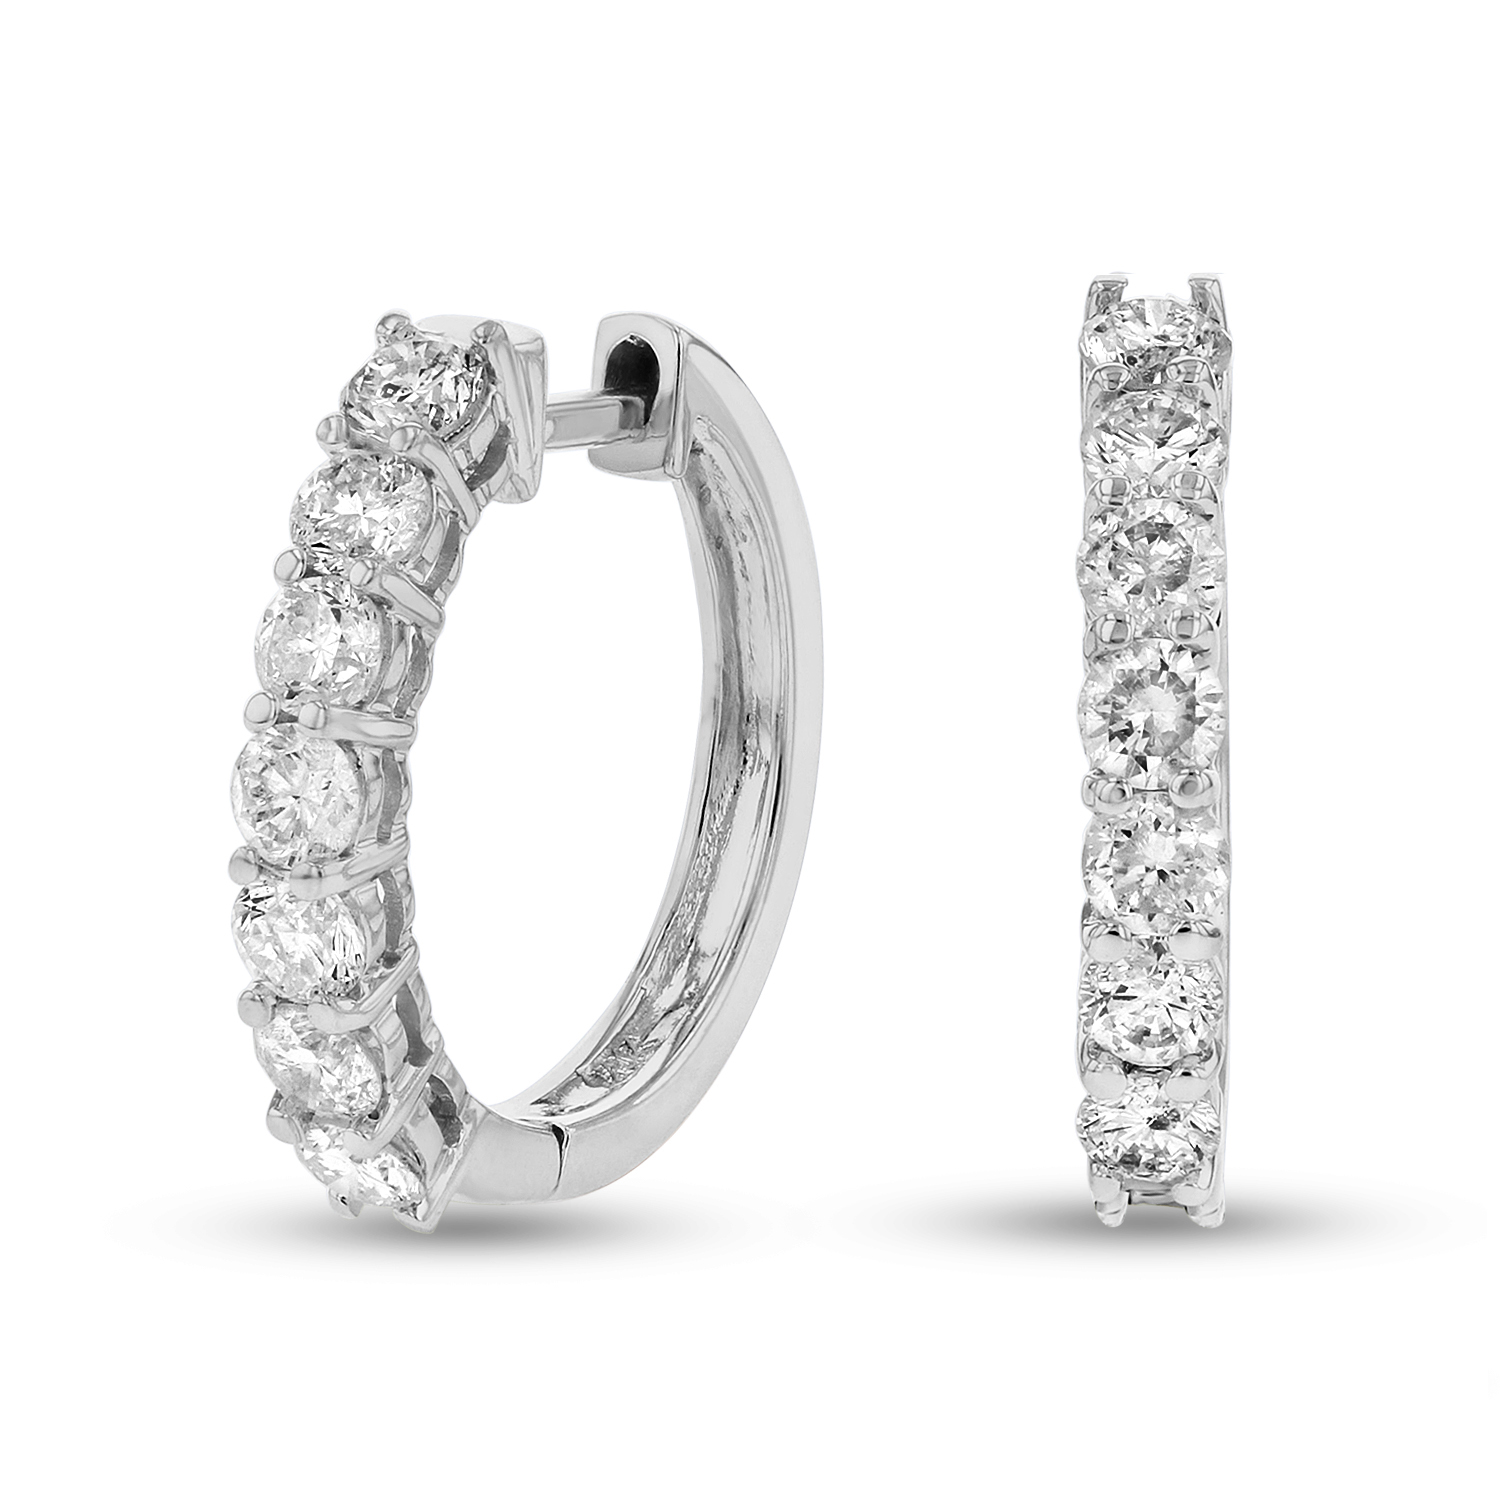 View 1.00ctw Diamond Hoop Earrings in 14k Gold